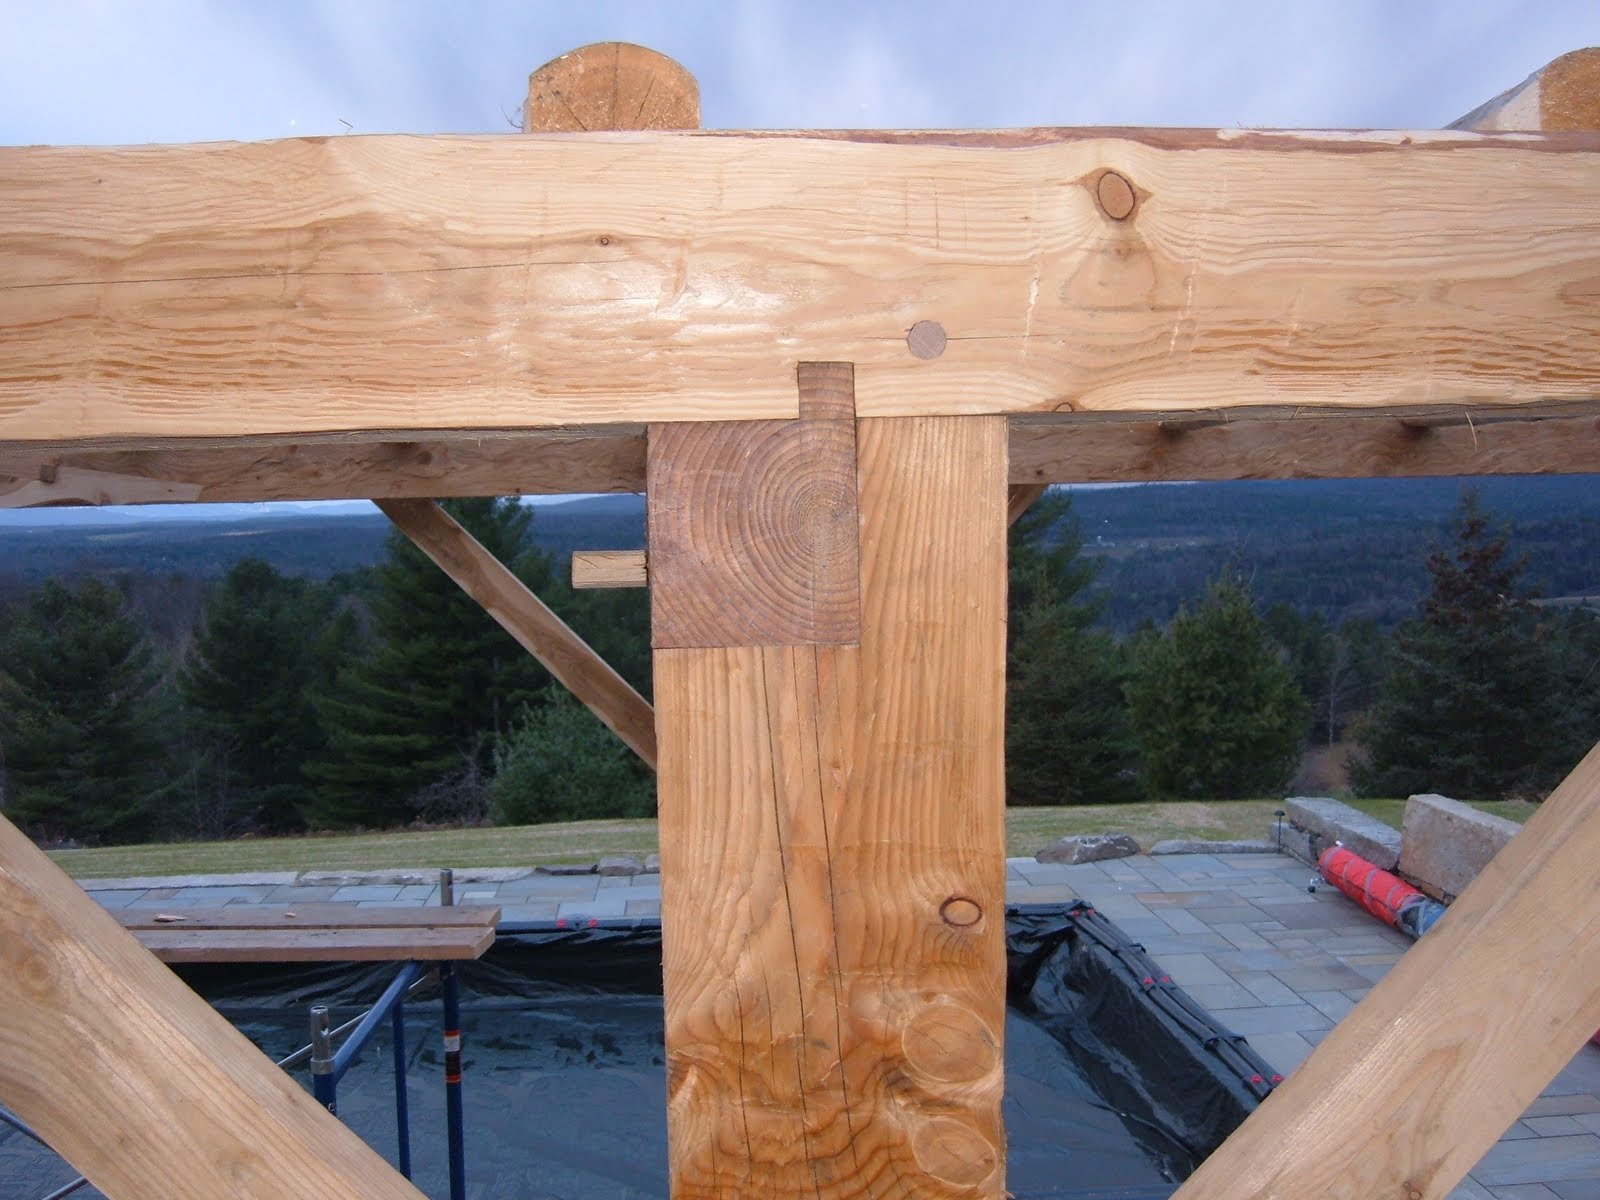 The detail of the tying joint and cogged tie beam end can be seen here.